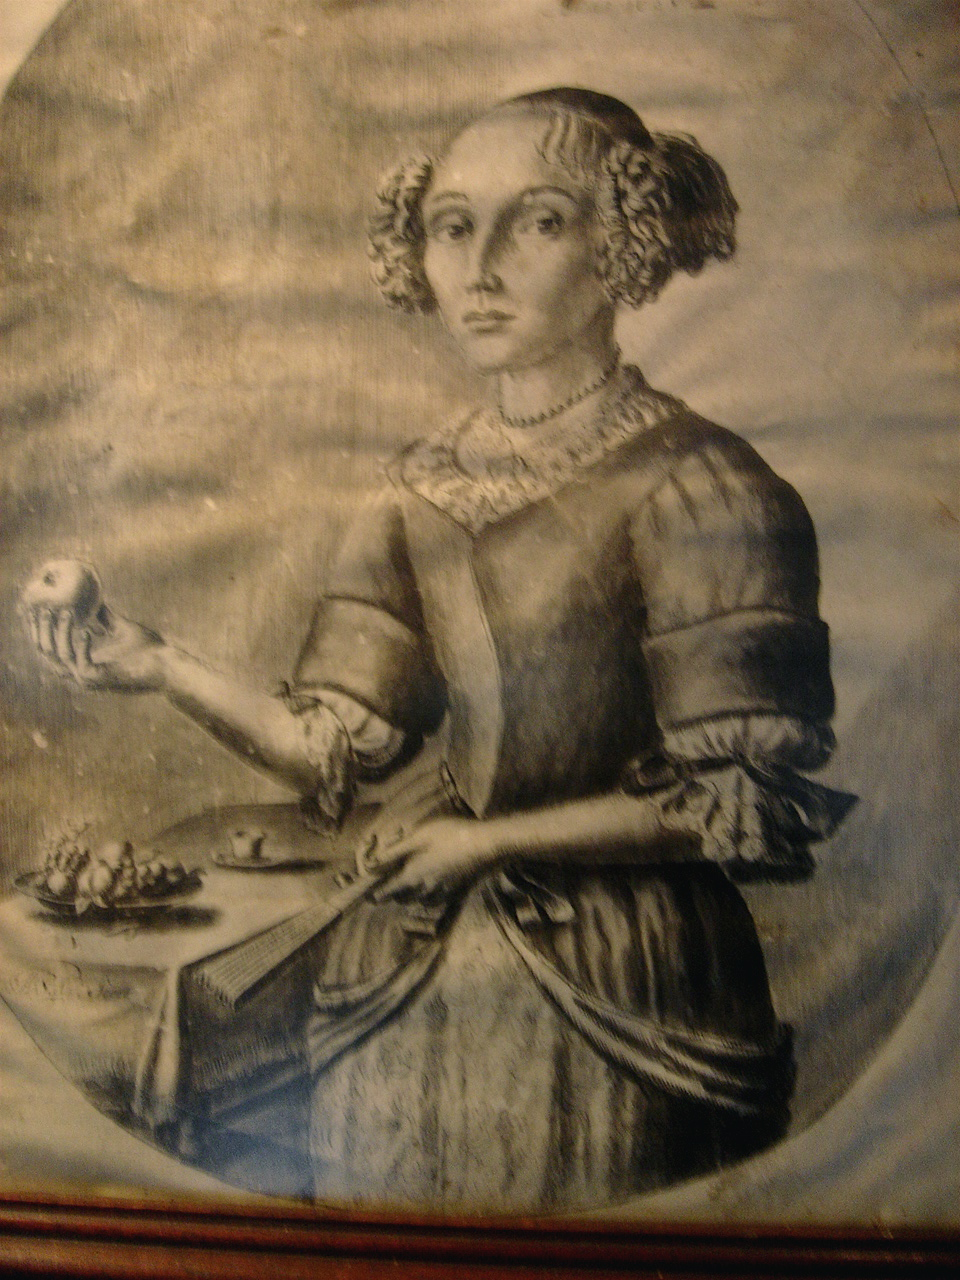 Original 1685 portrait of Anna de Koning